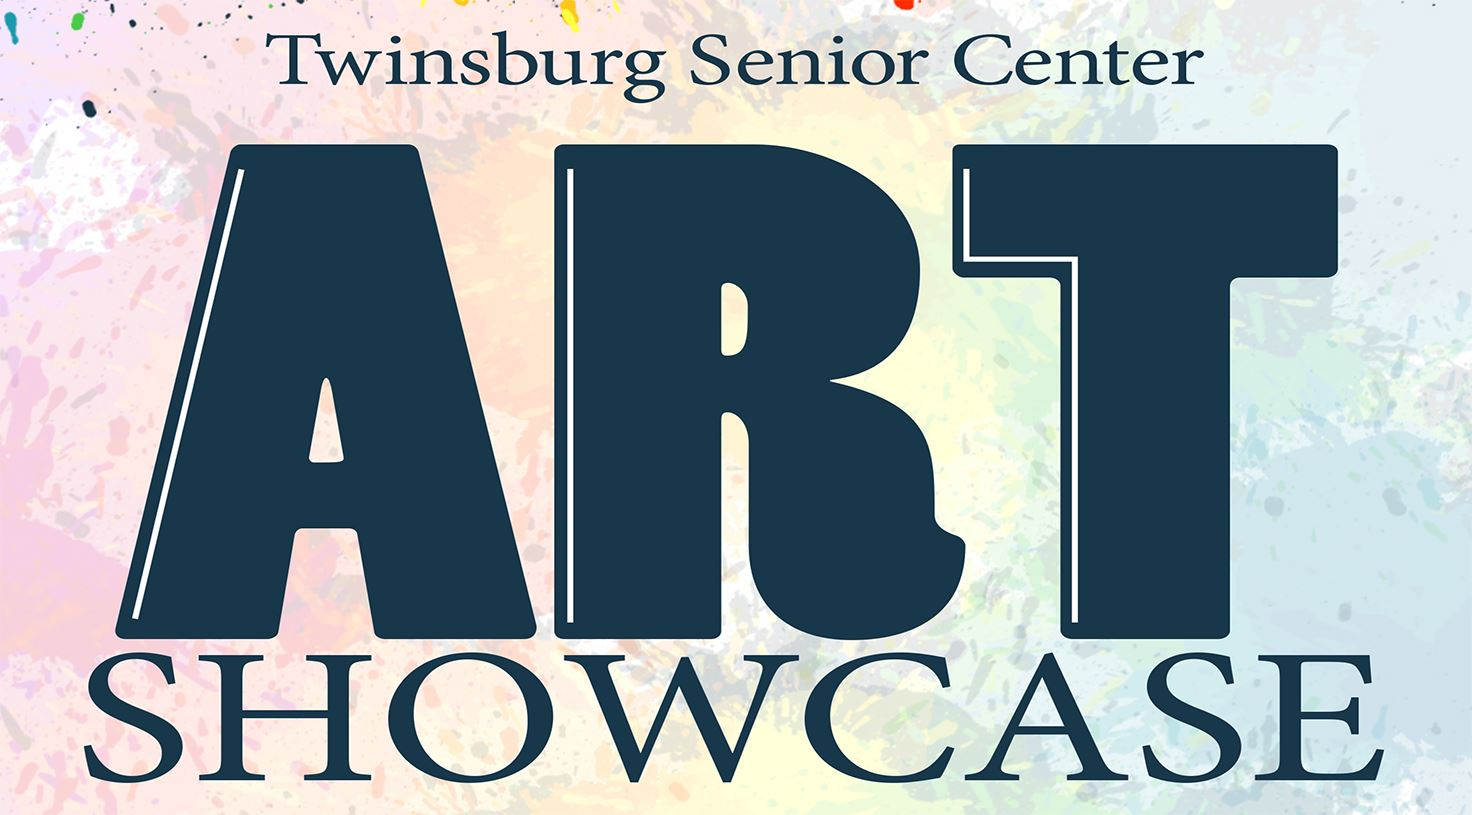 Local talent on display at the Twinsburg Senior Center Art Showcase! All artists are local senior ci